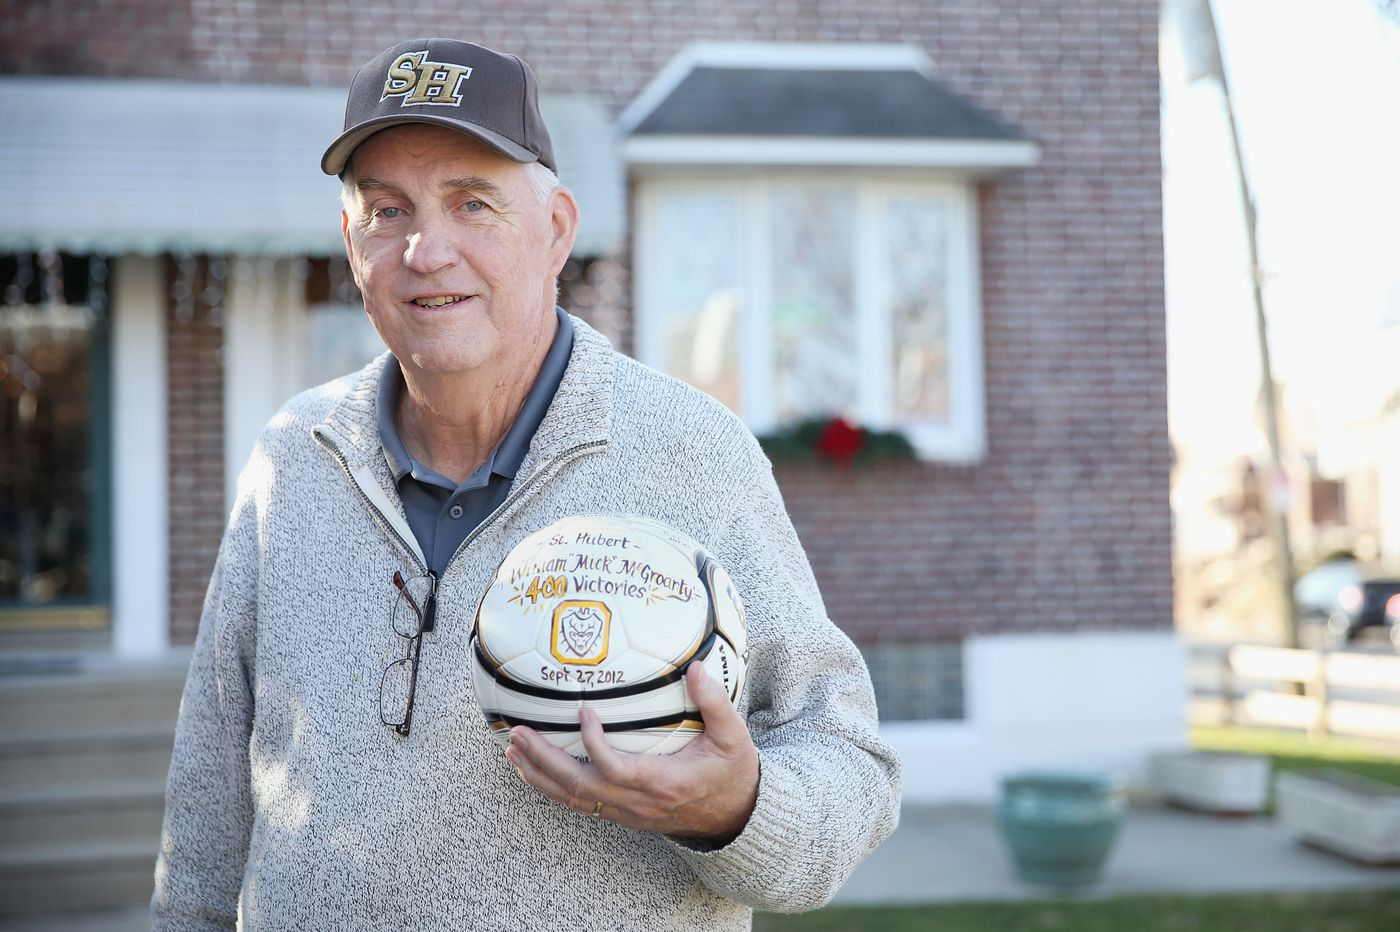 Mickey McGroarty, founder of the St. Hubert soccer team, looks back on 43 years of coaching